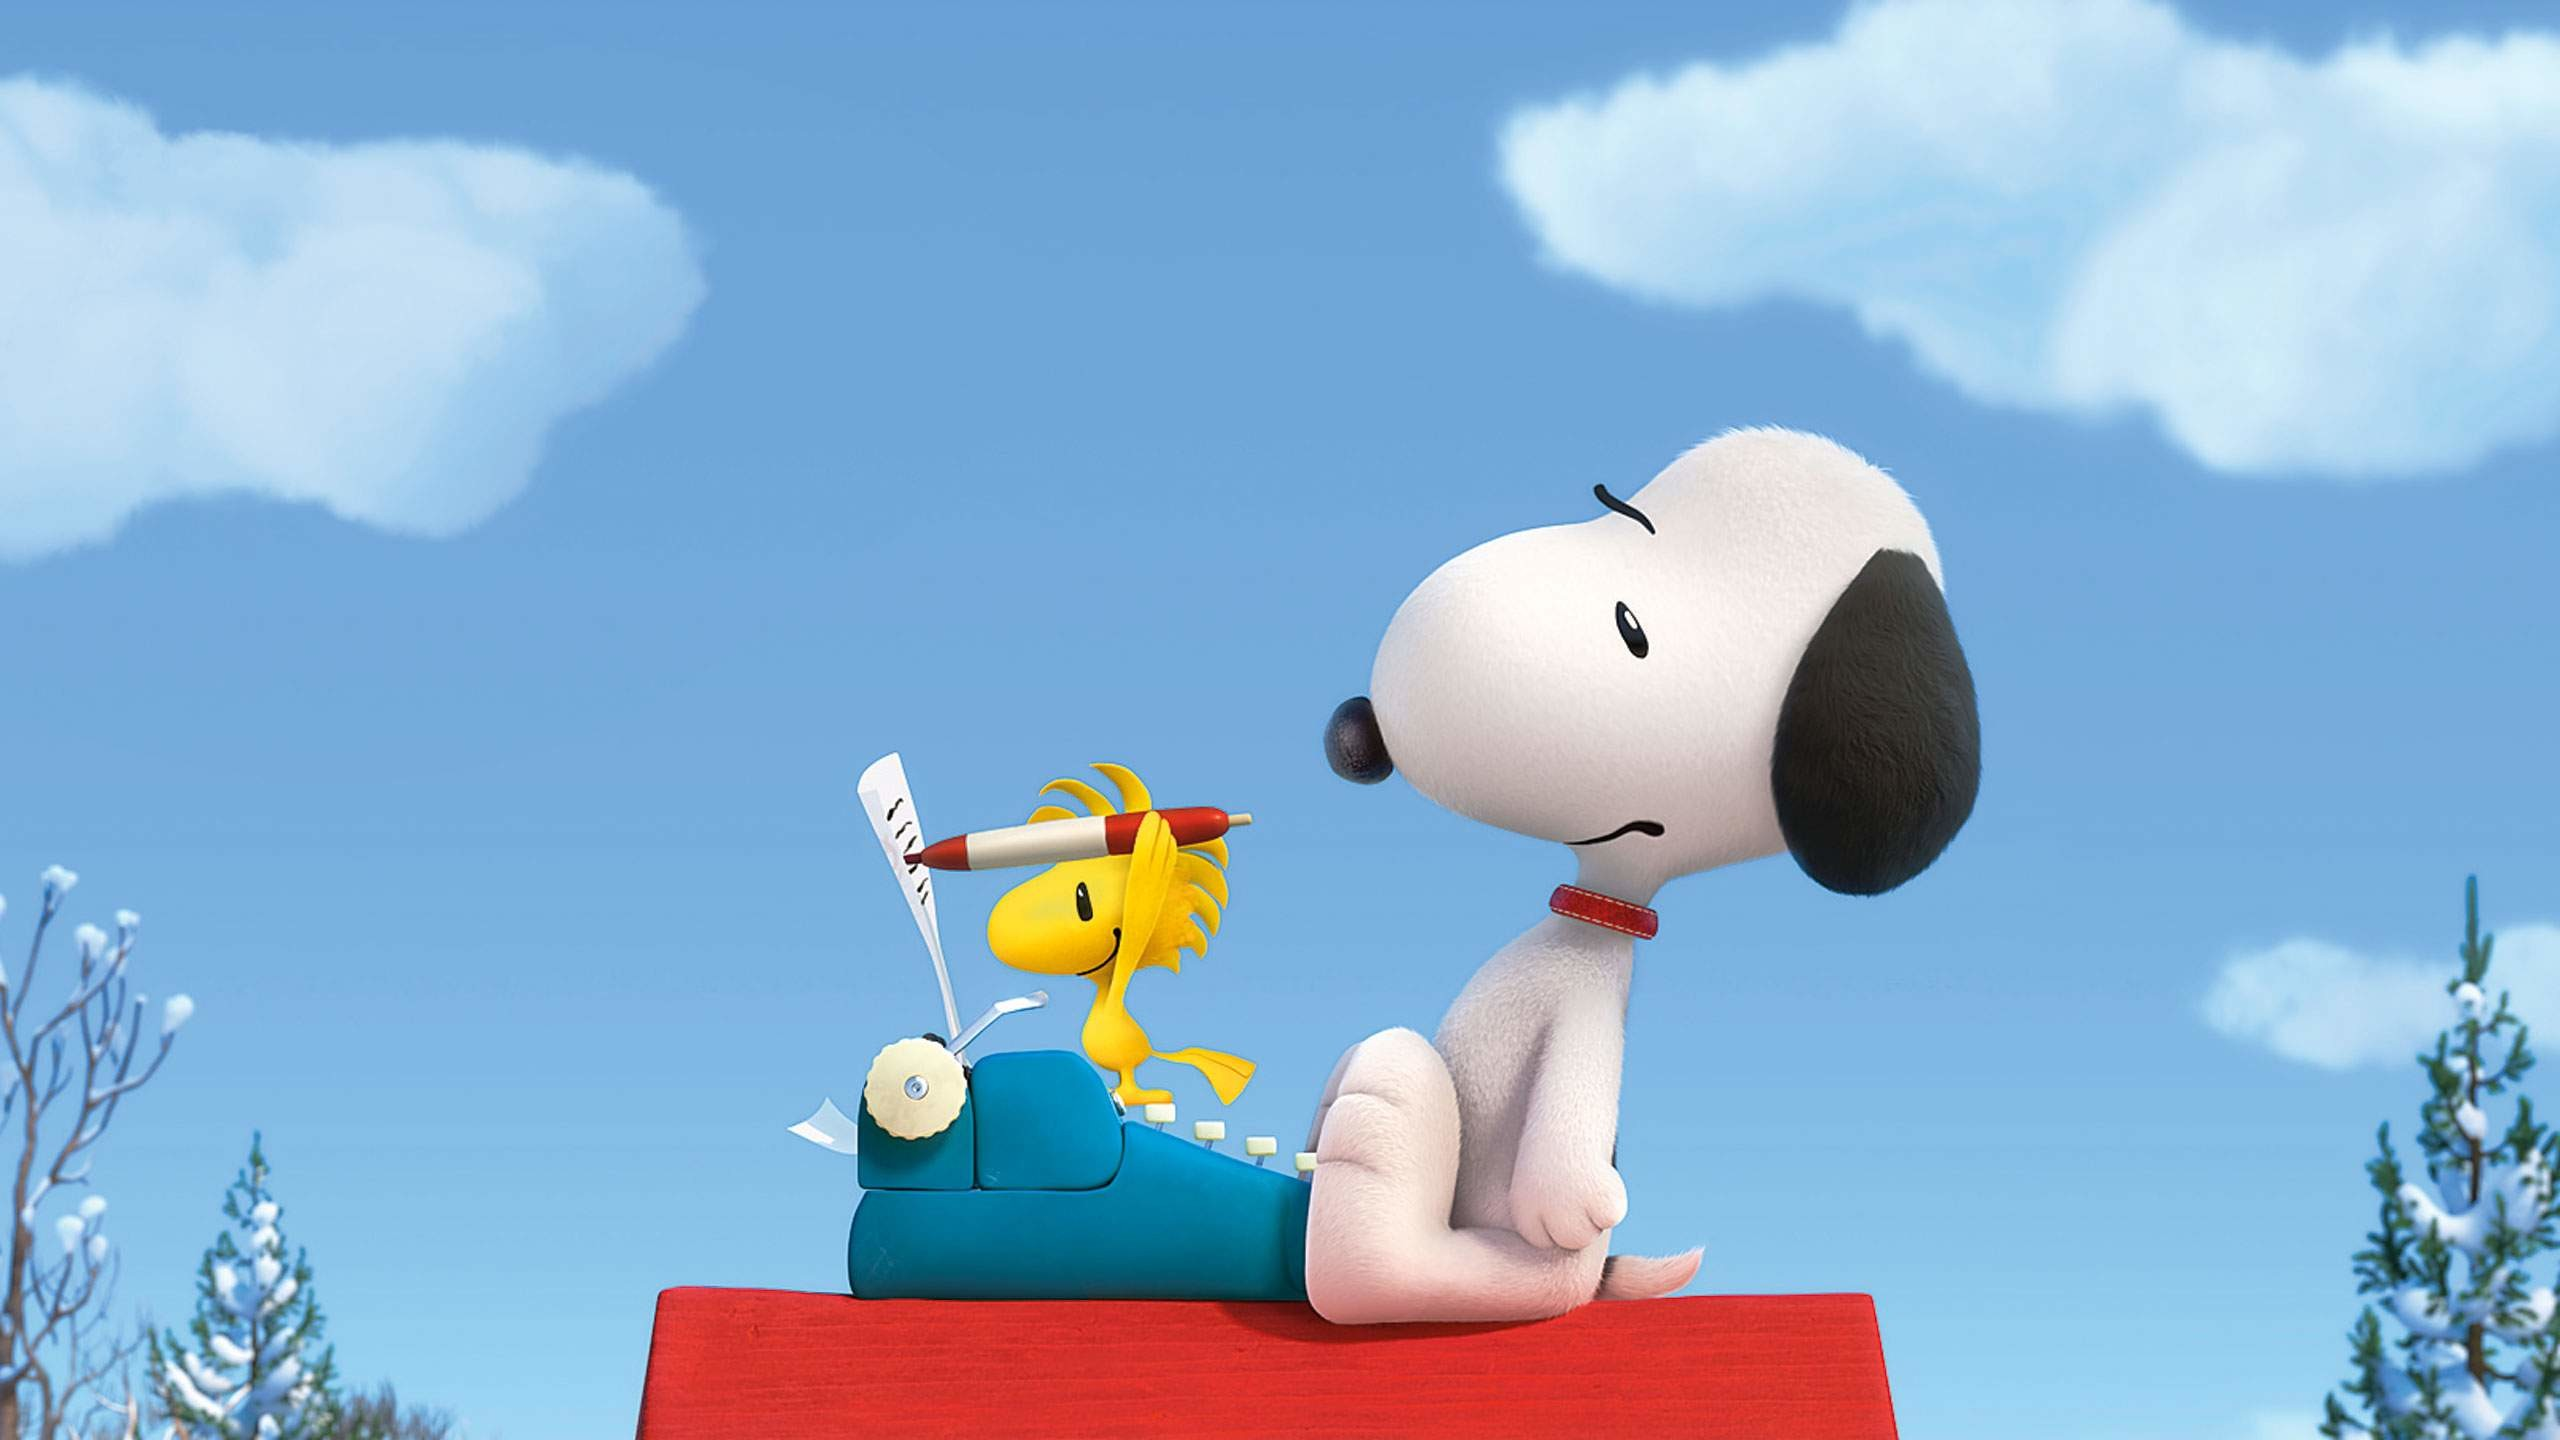 Snoopy Wallpaper Desktop Background